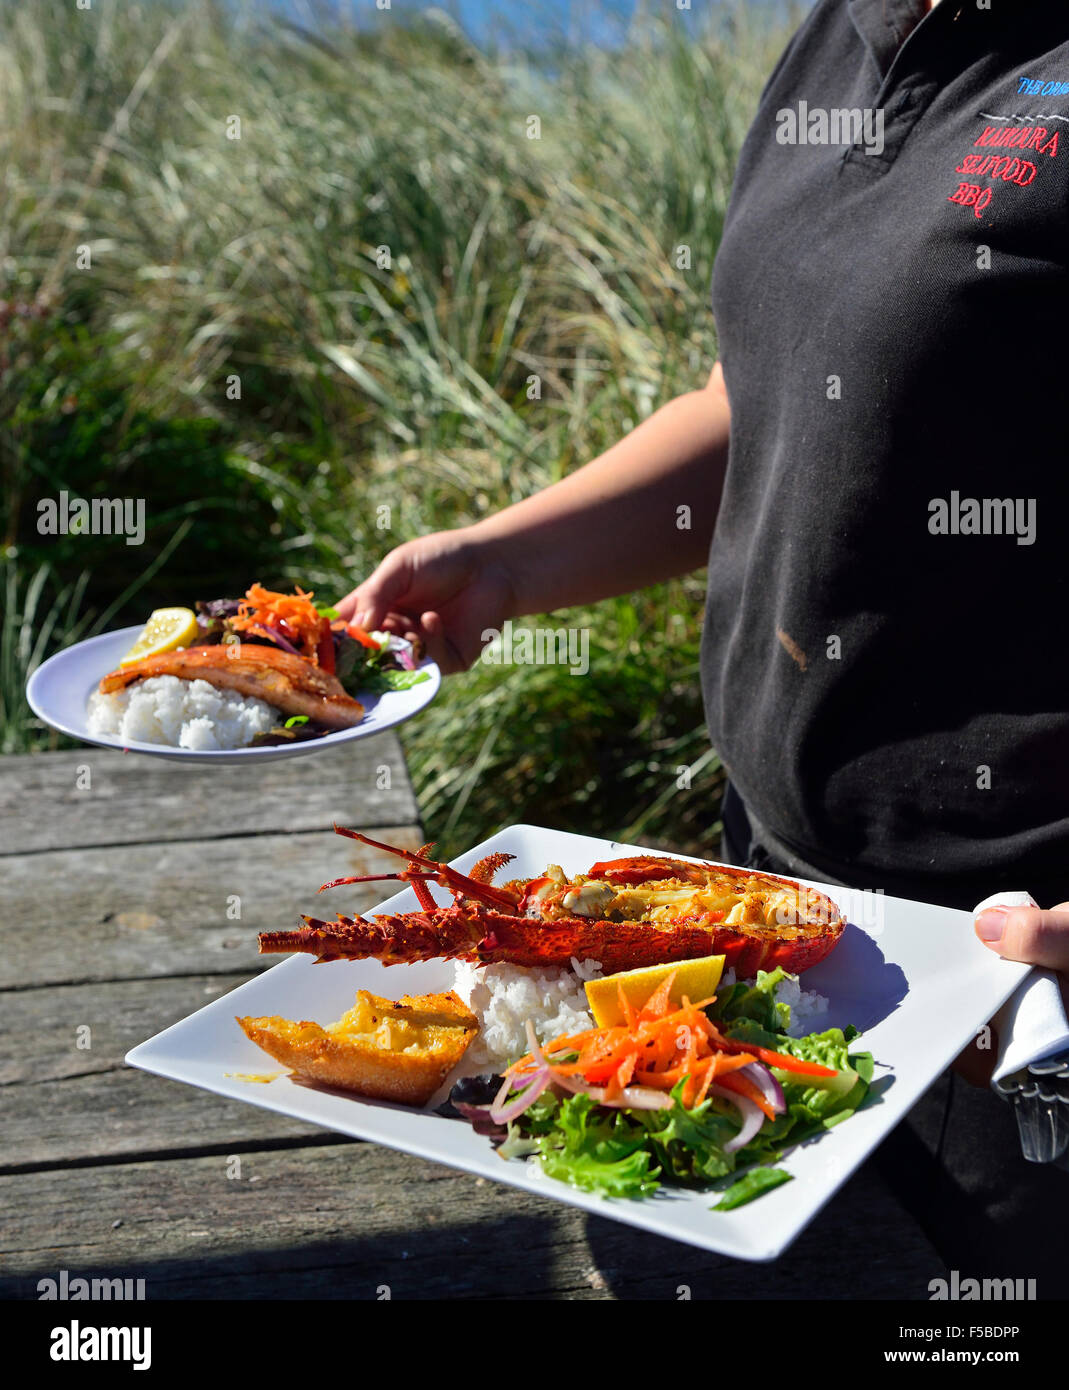 serving  crayfish meal  from a beach -side trailer stall South of Kaikōura township, South Island, New Zealand. - Stock Image